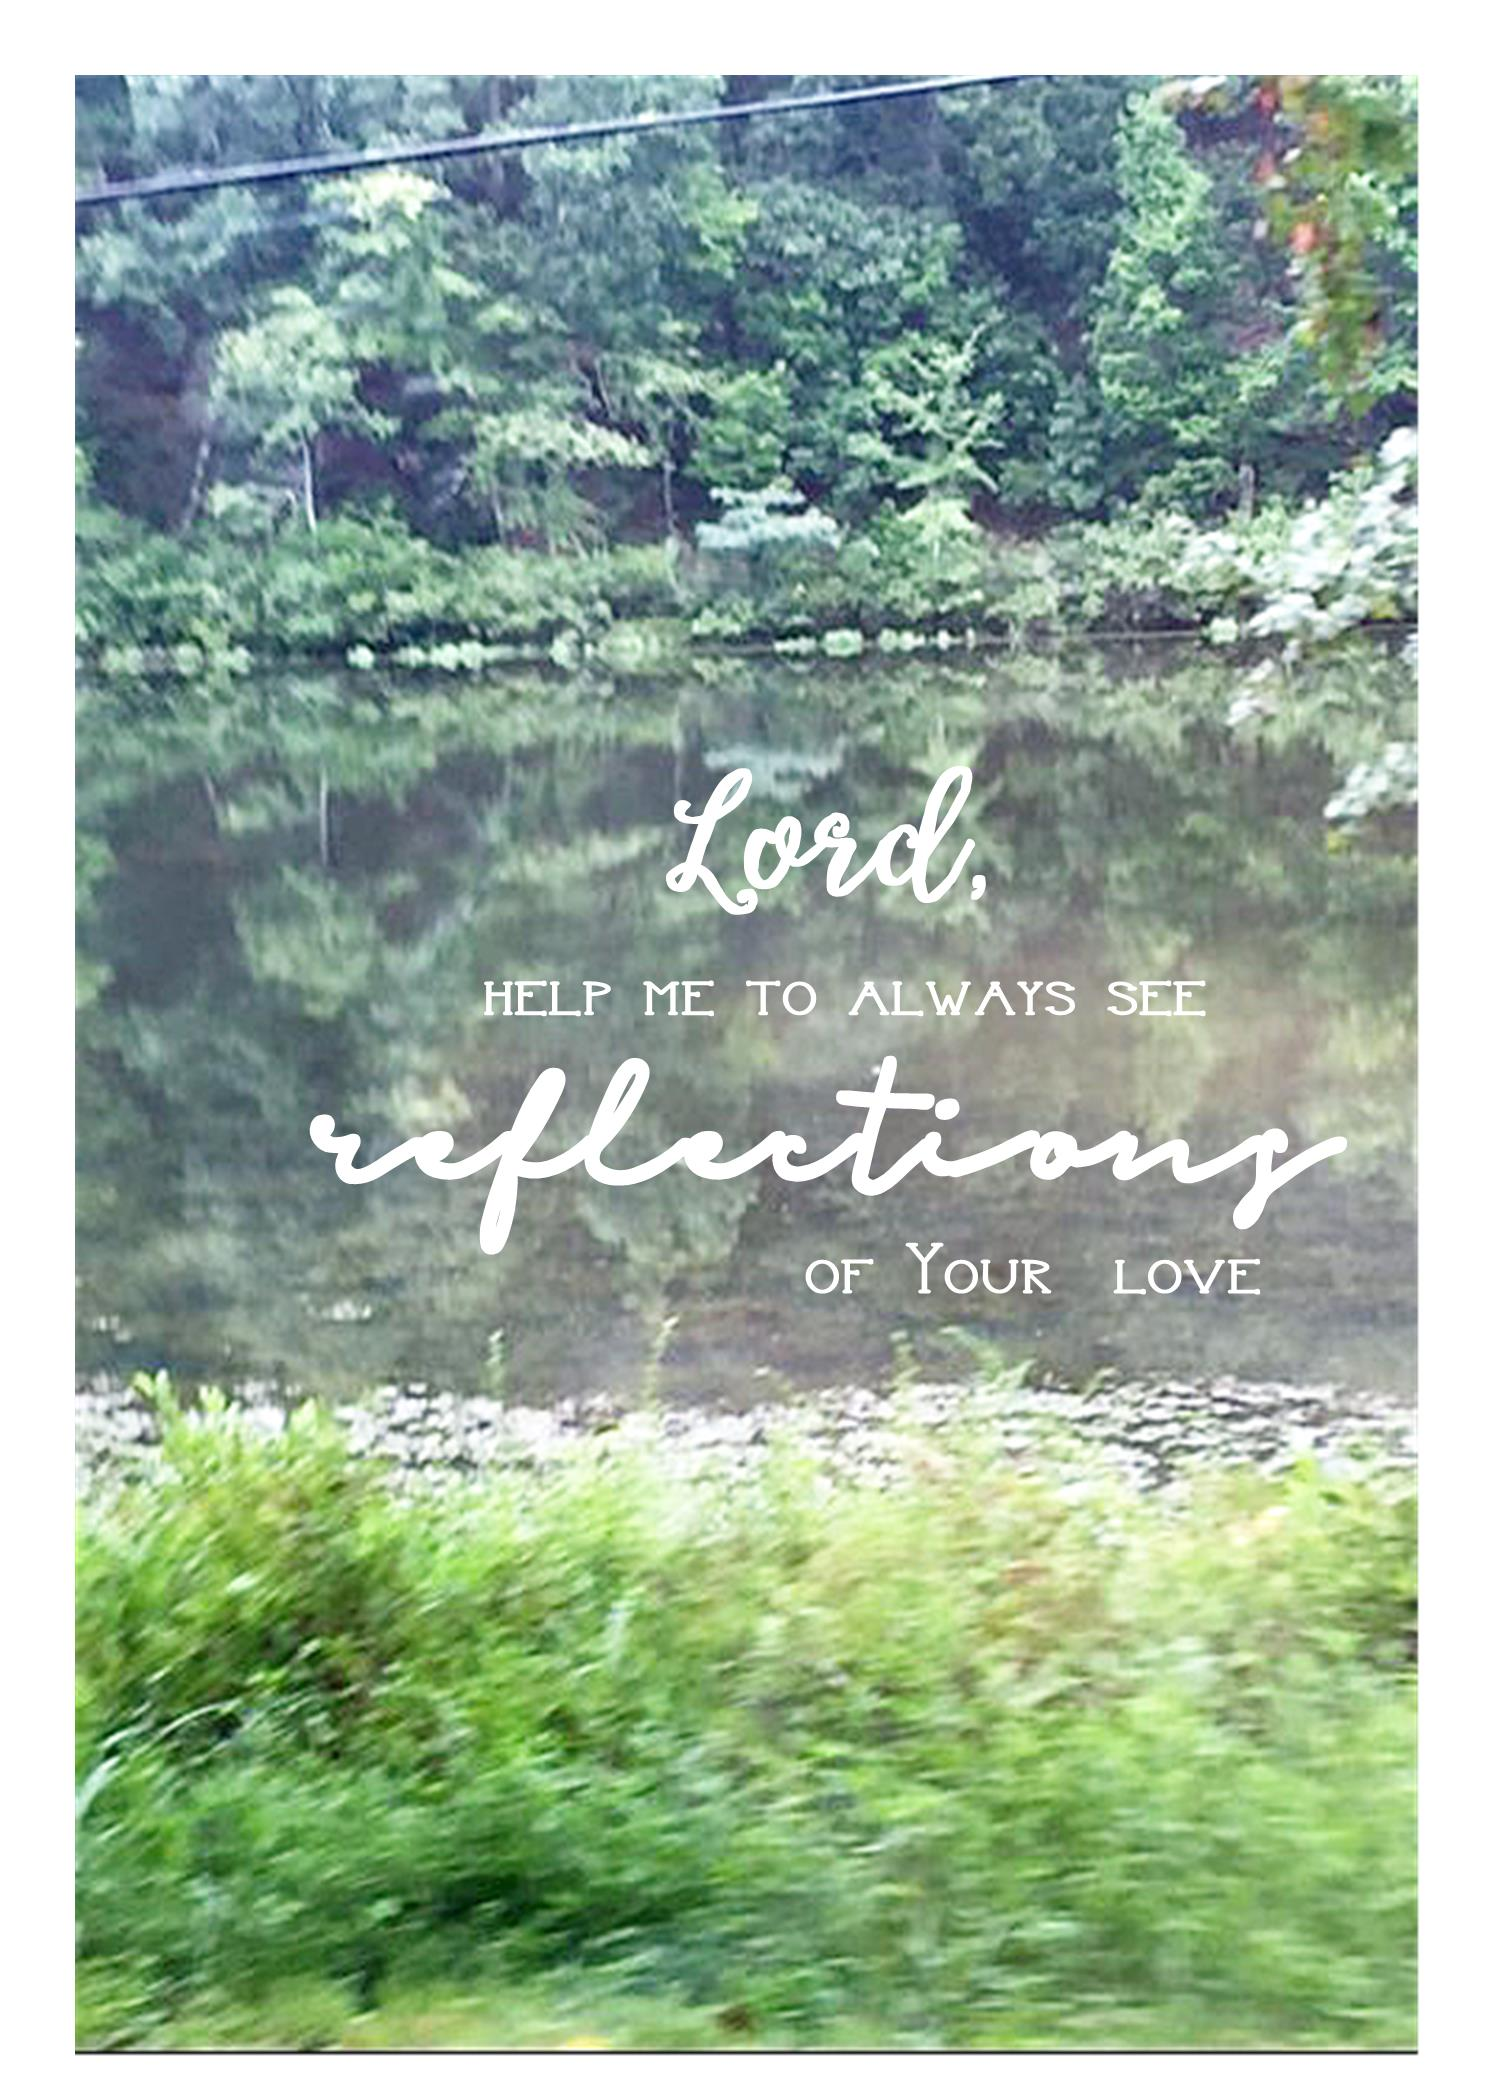 Reflections of His love